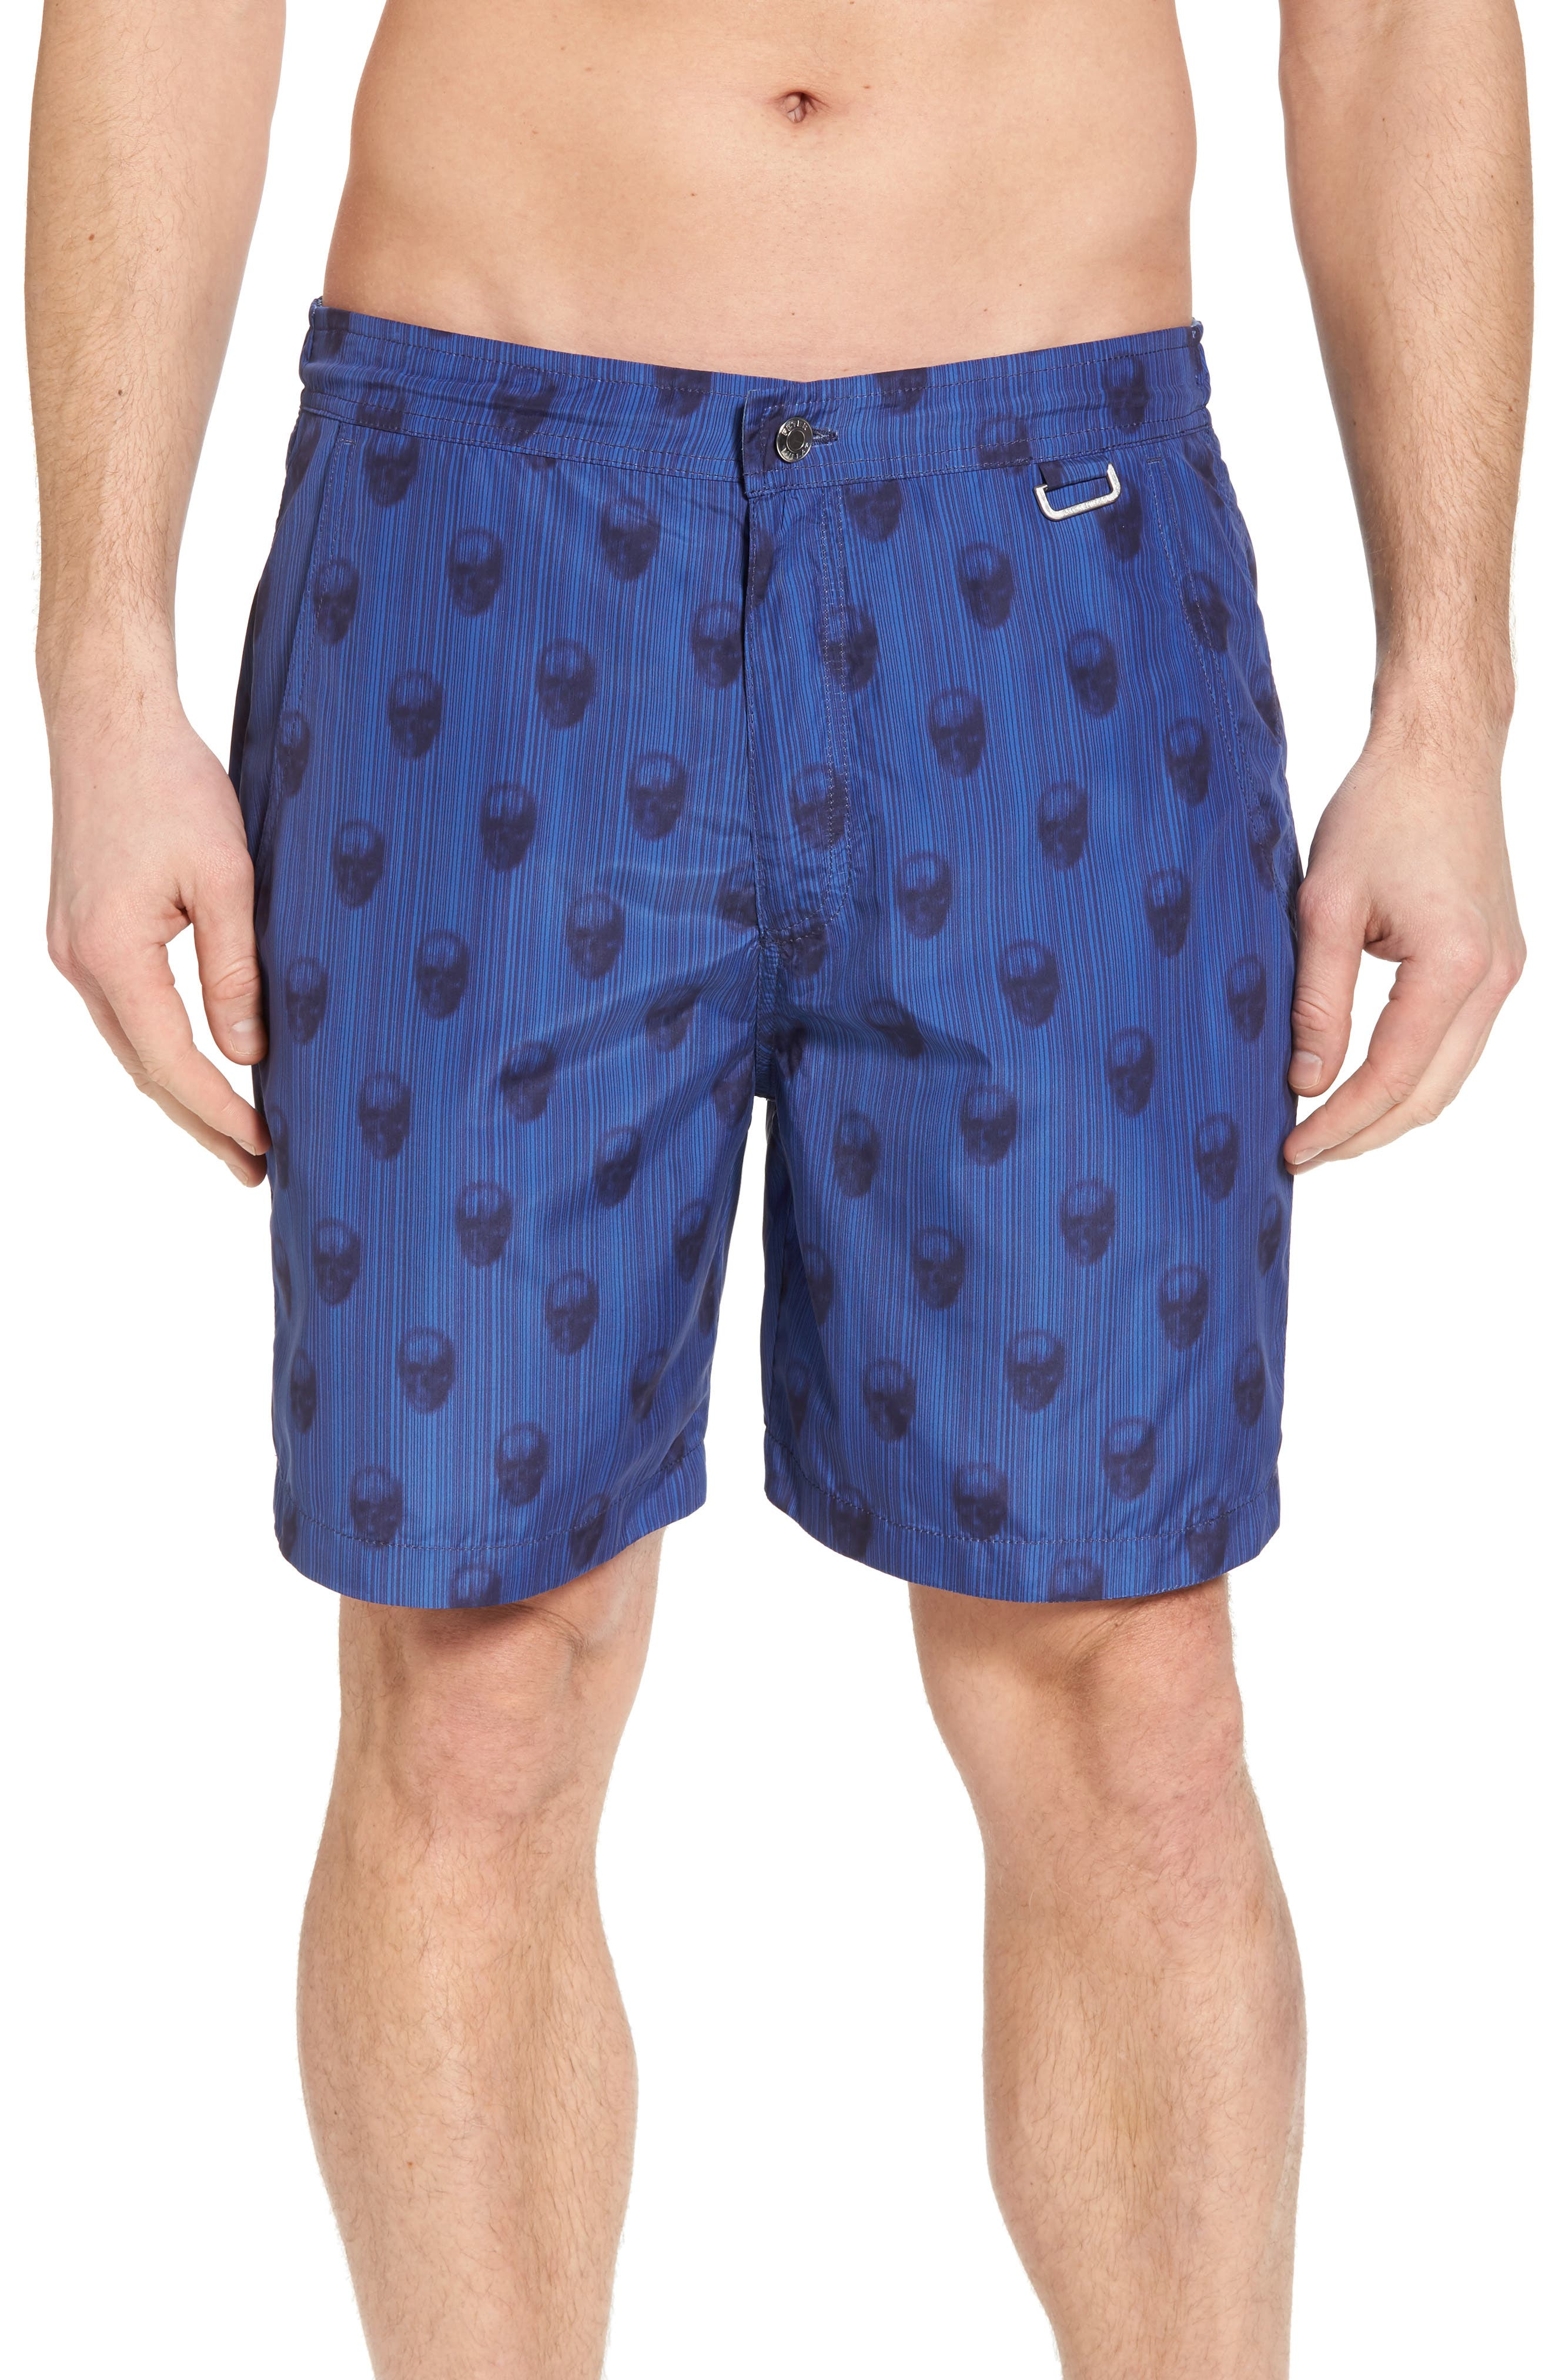 Peter Millar Black Jack's Bay Swim Trunks,                         Main,                         color, 440